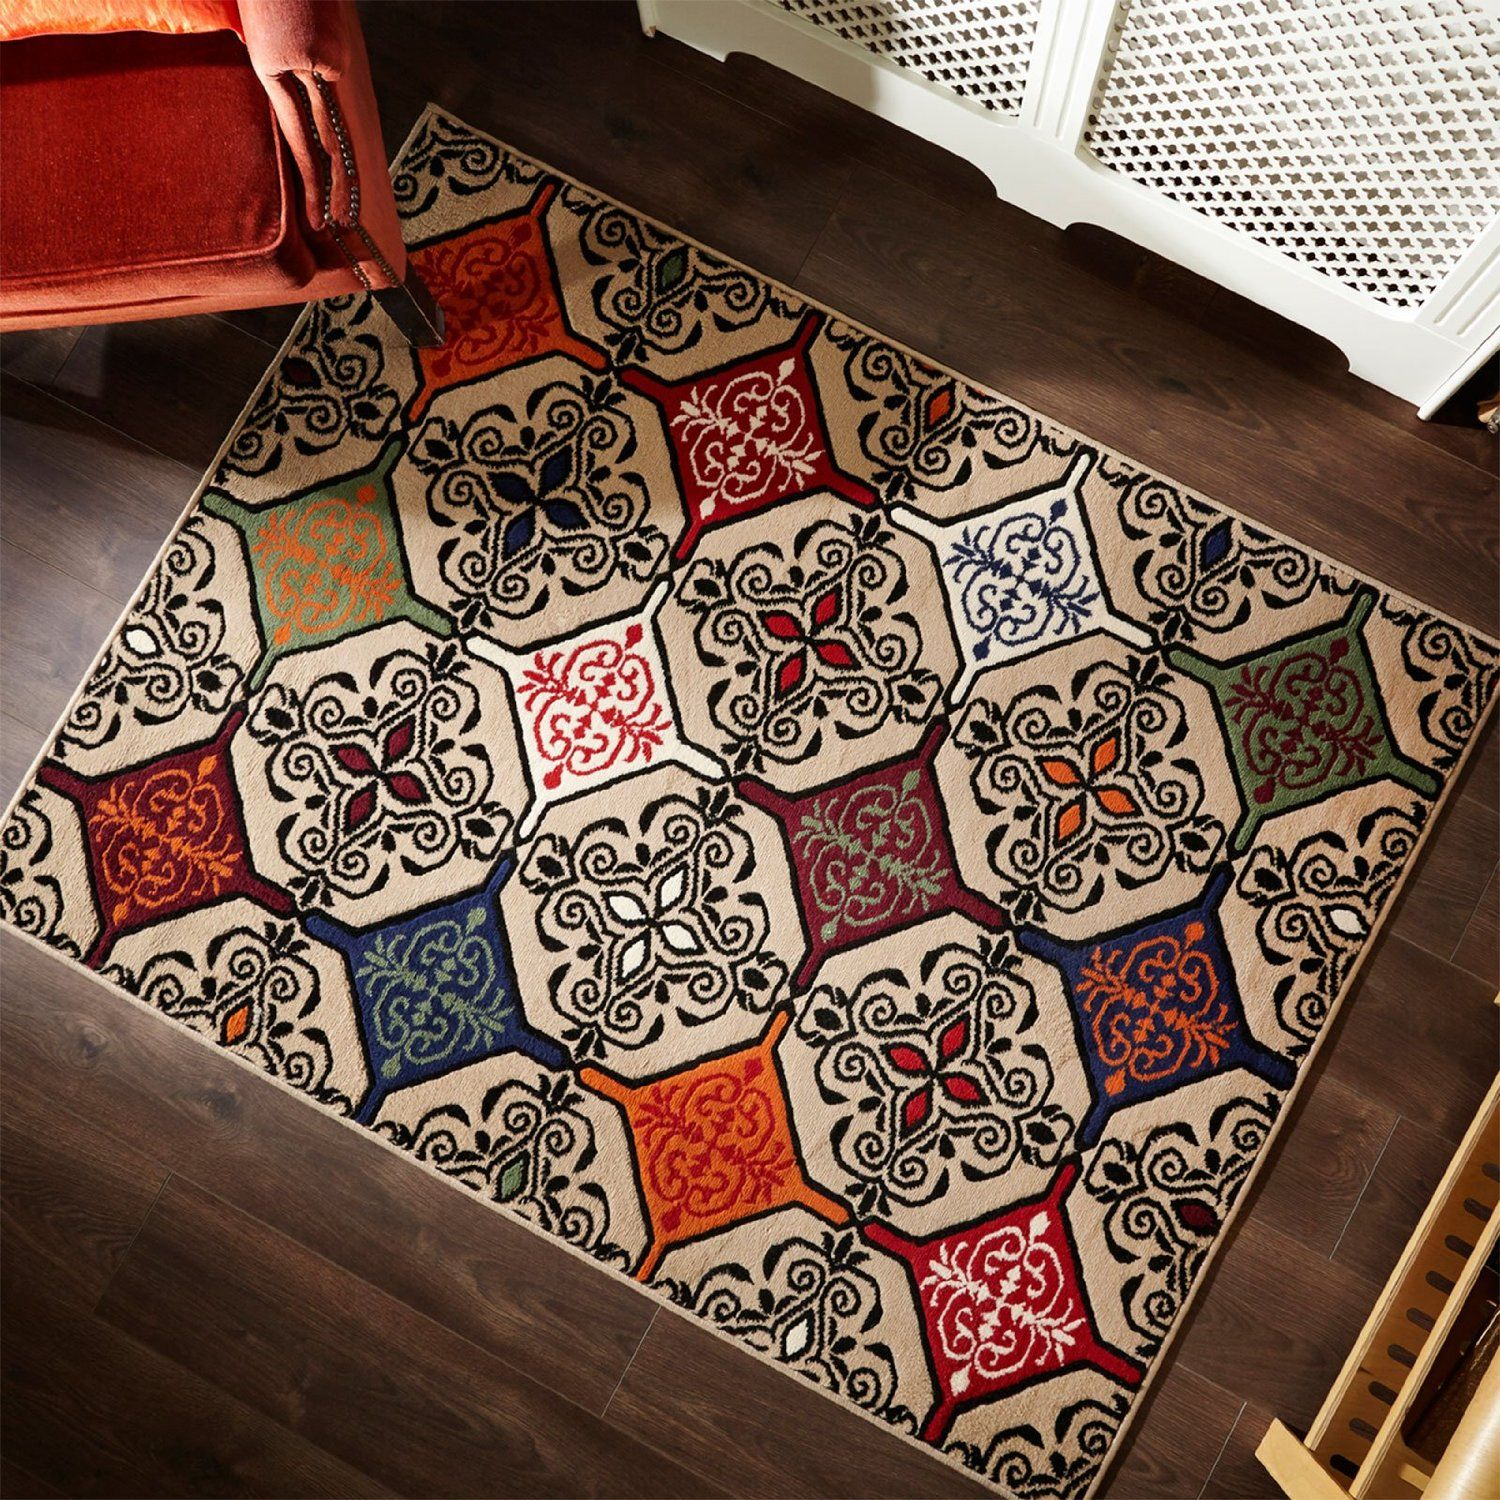 and fatigue of mats marvelous by anti luxury garden padded gelpro grasscloth khaki amazon envelor com image newlife download floor comfort kitchen mat perfect home durable